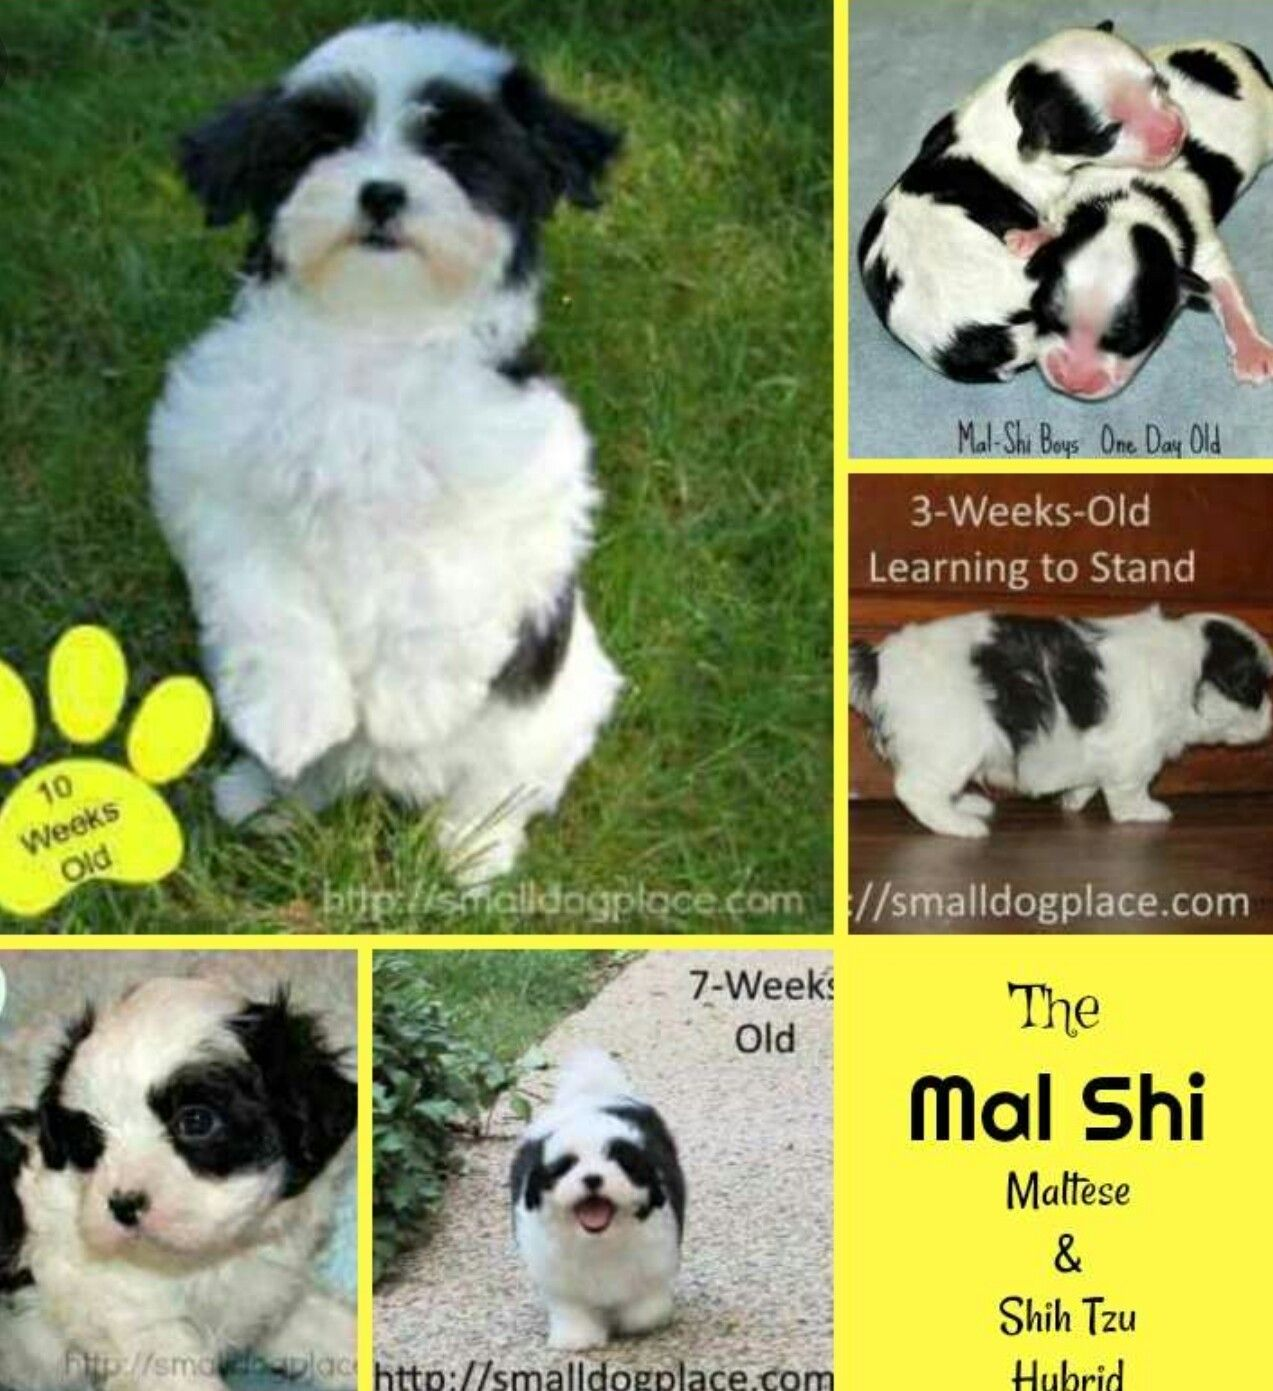 Pin By Enticing On Cute Puppies Shih Tzu Hybrid Dogs Maltese Dogs